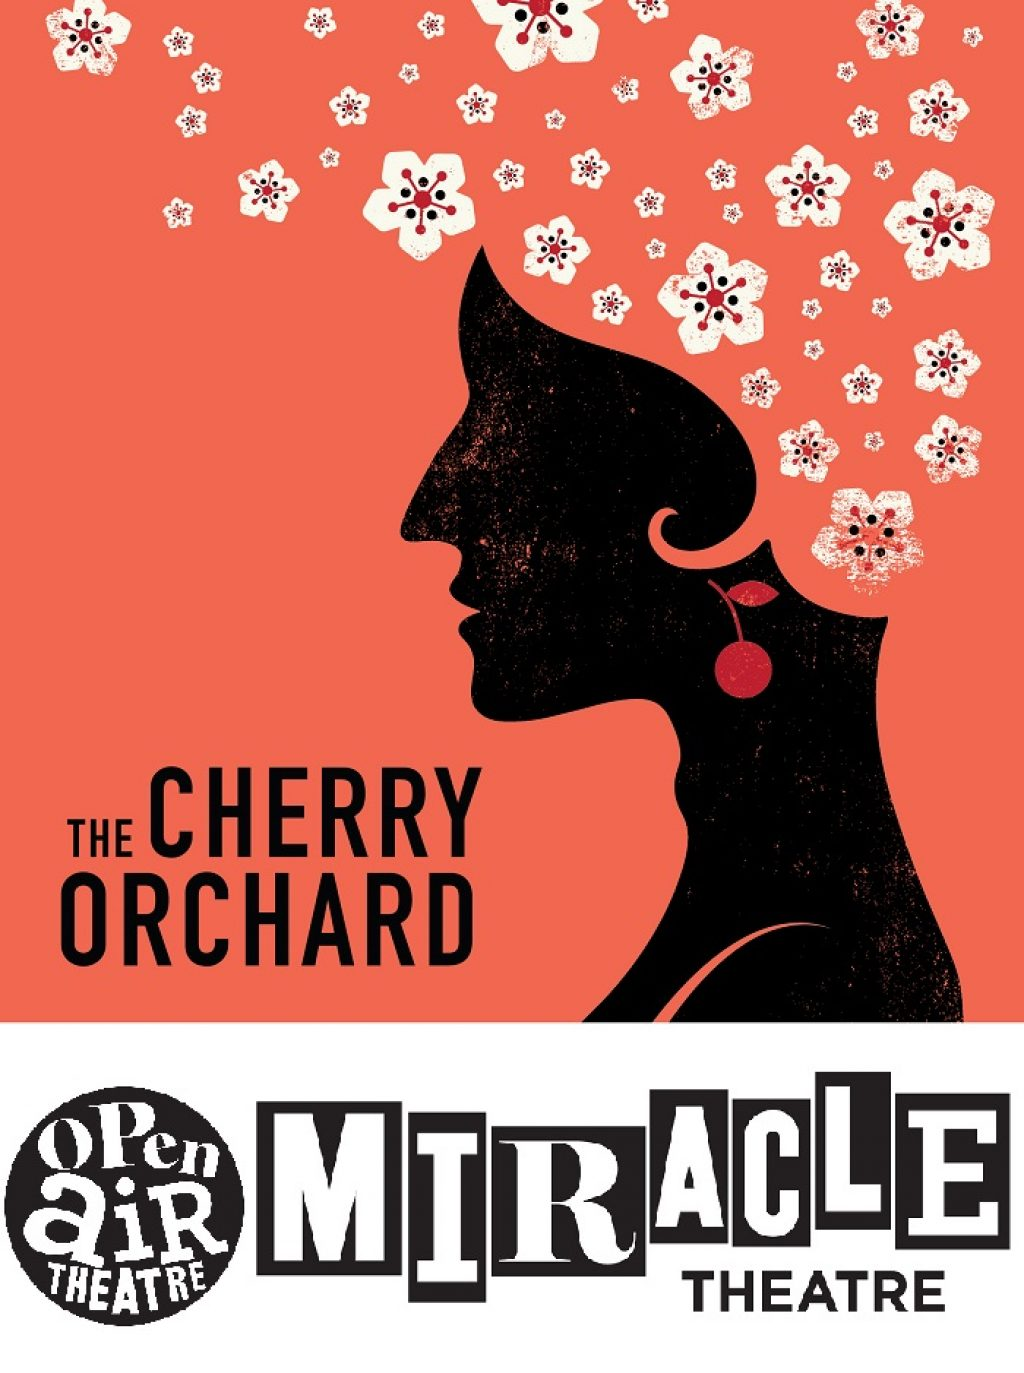 The Cherry Orchard - open air - Miracle Theatre